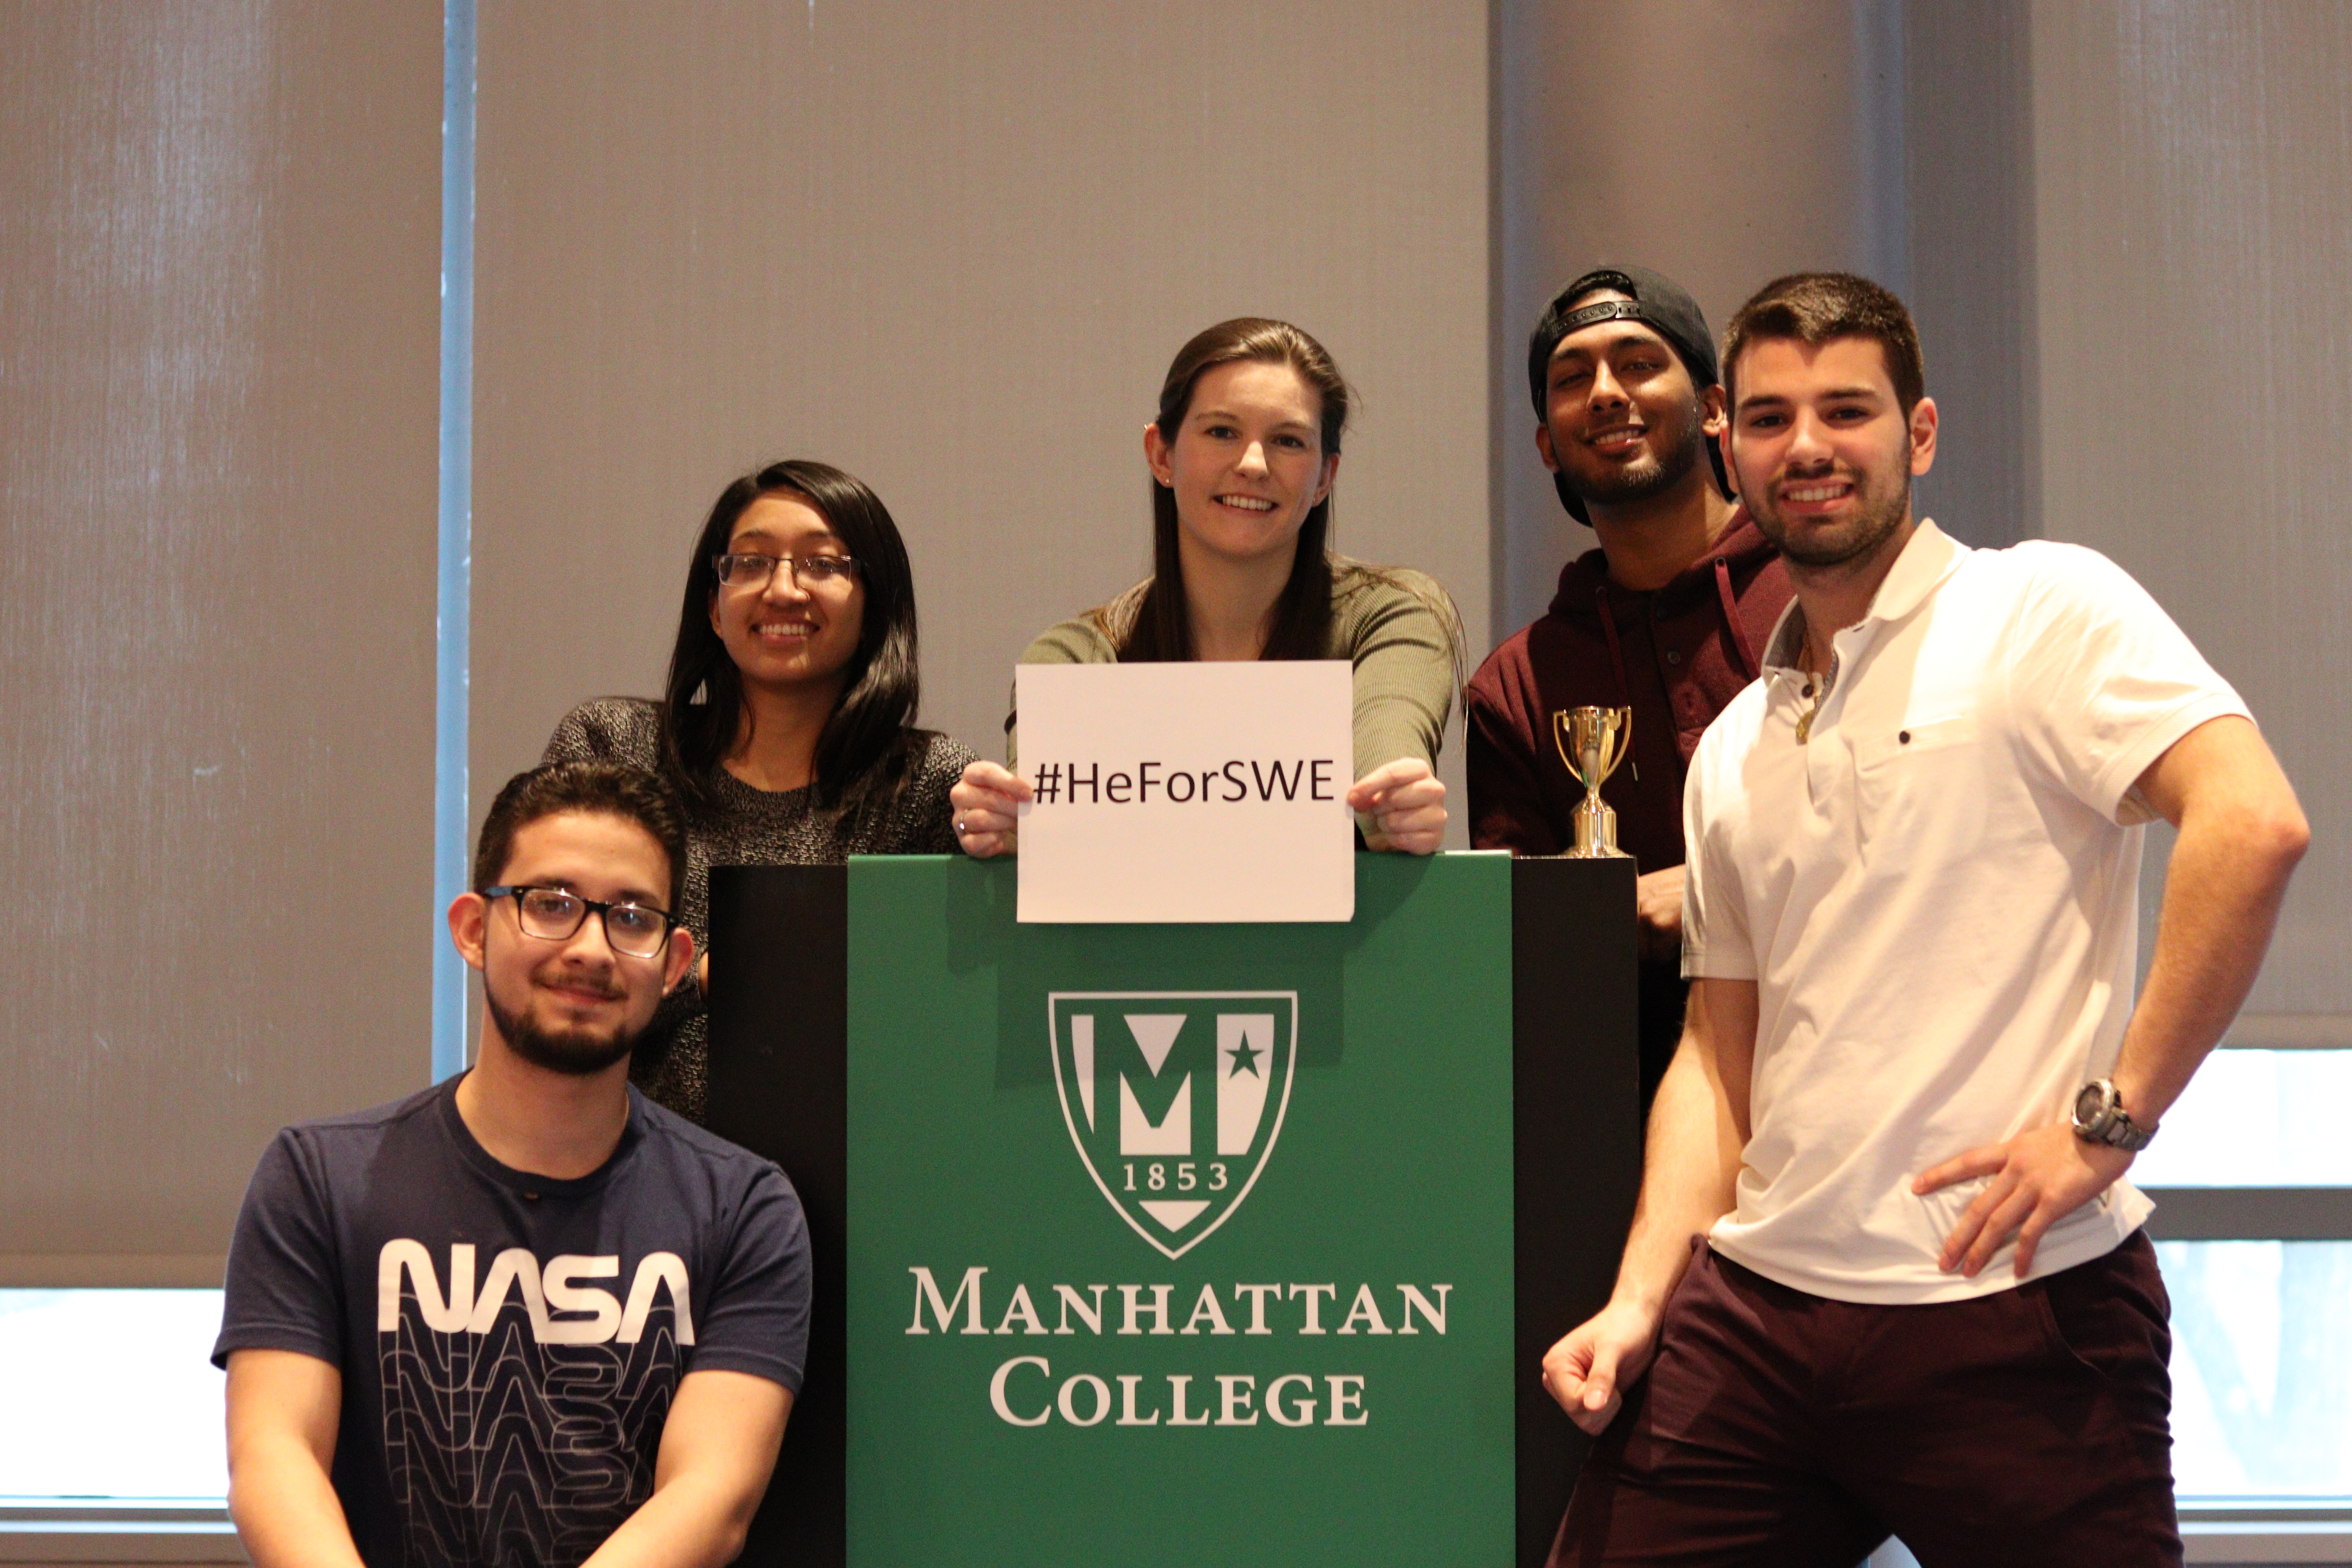 Five students standing by podium with trophy and sign that reads; hashtag (HeForSWE)